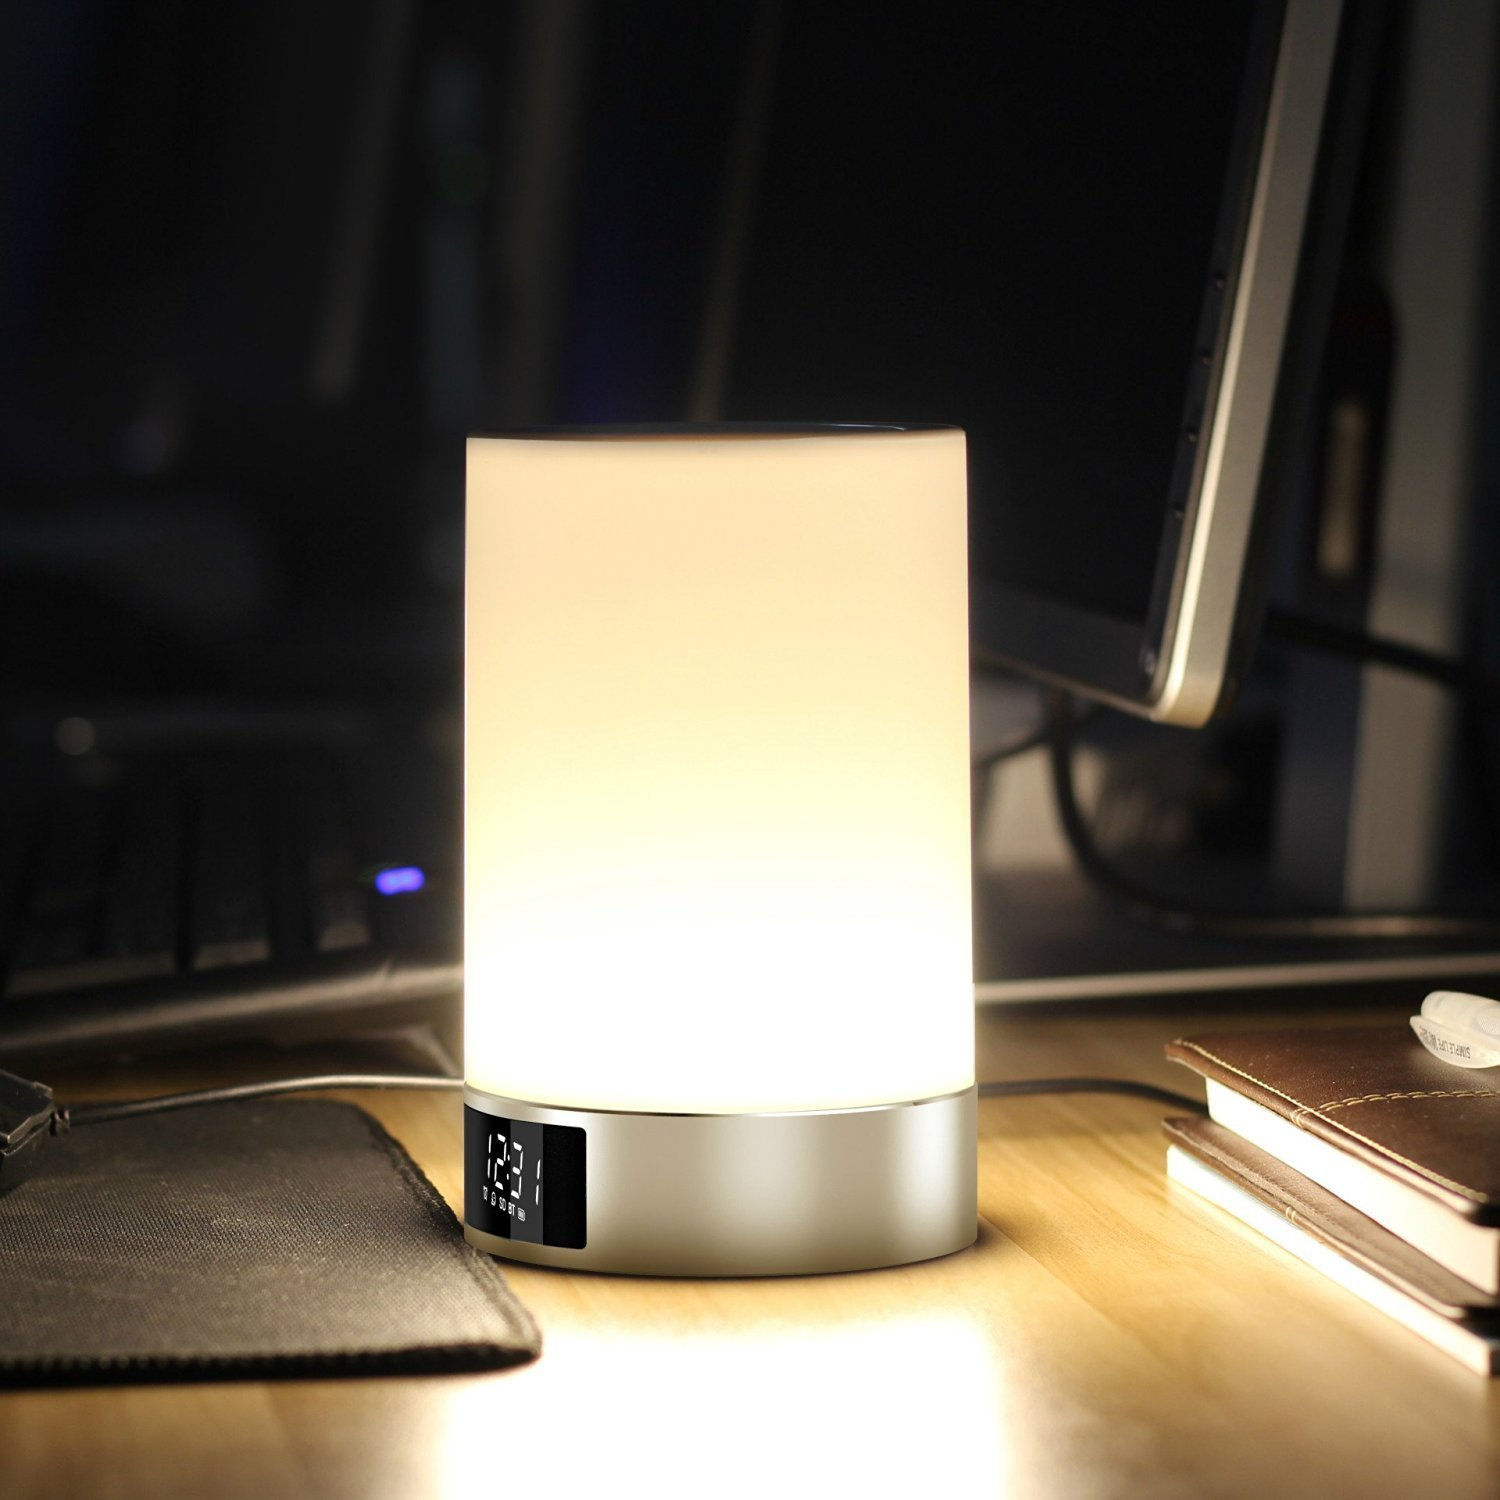 Mabor bedside lamp touch sensor table lamp multicolor dimmable mabor bedside lamp touch sensor table lamp multicolor dimmable night light with bluetooth speaker alarm clock tf card slot hands free timing geotapseo Choice Image